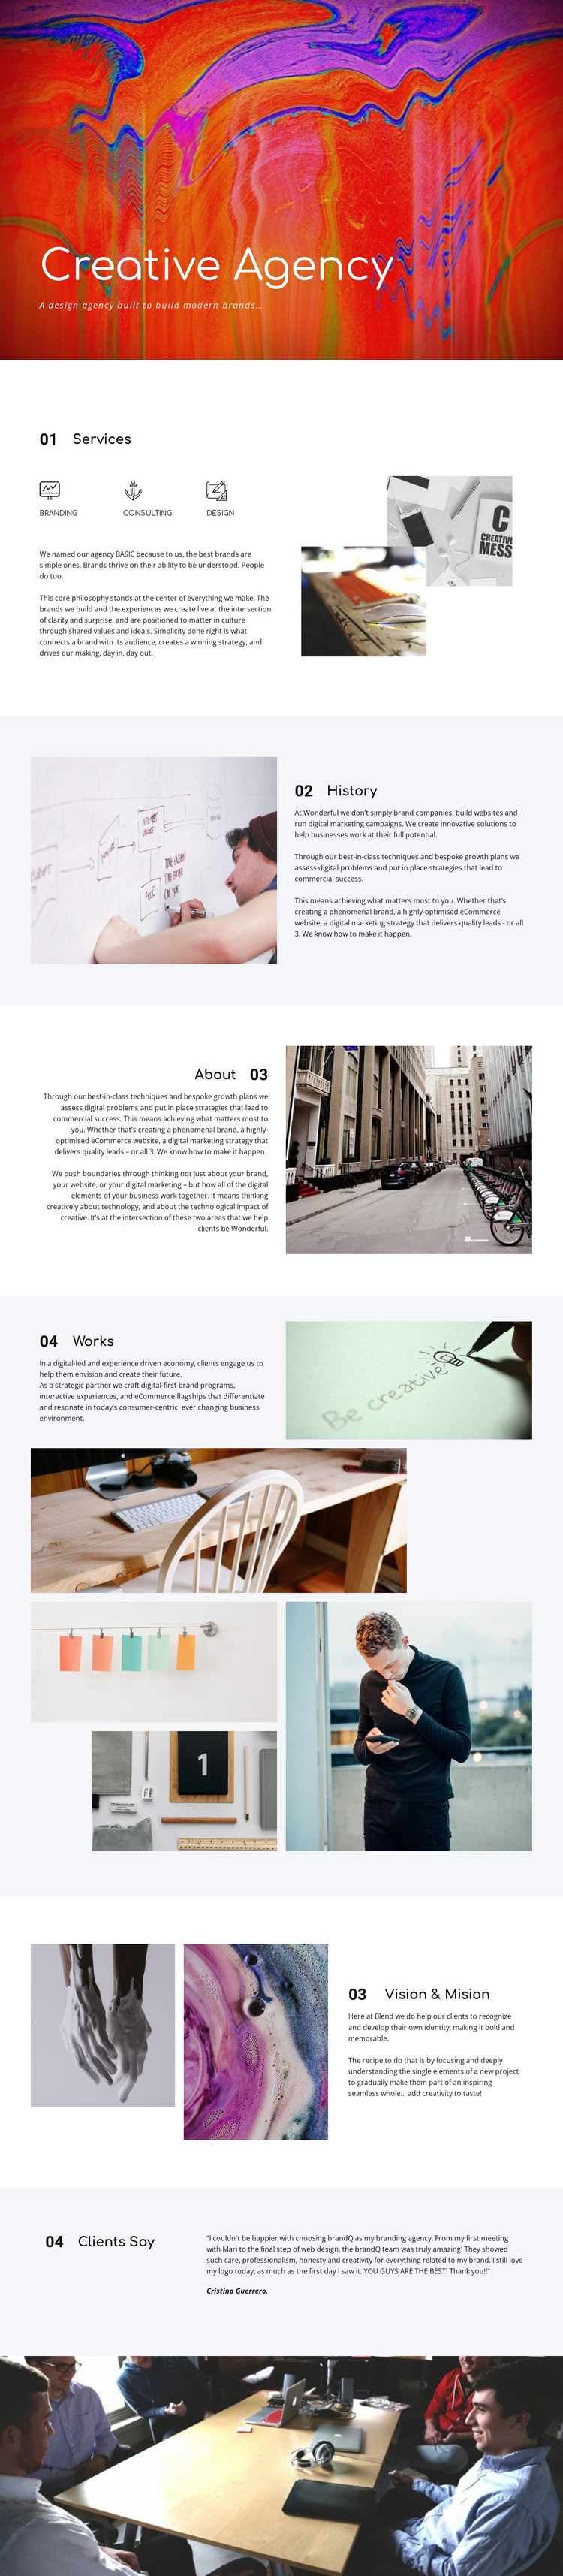 Creative gallery Web Design